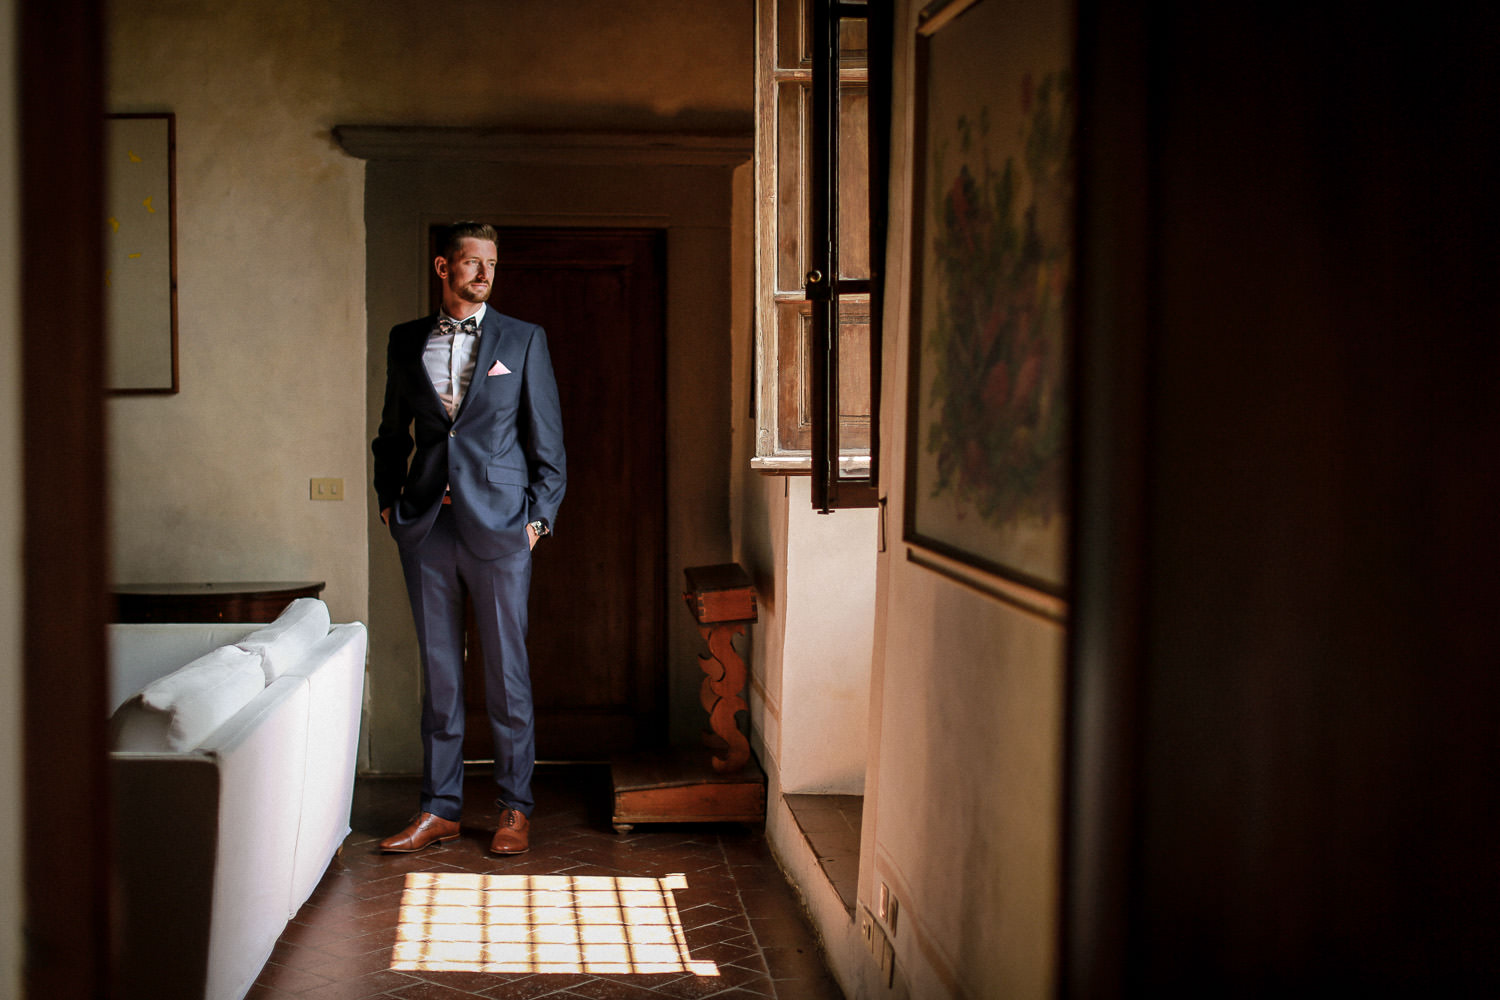 Groom waring blue suit standing in window for portrait